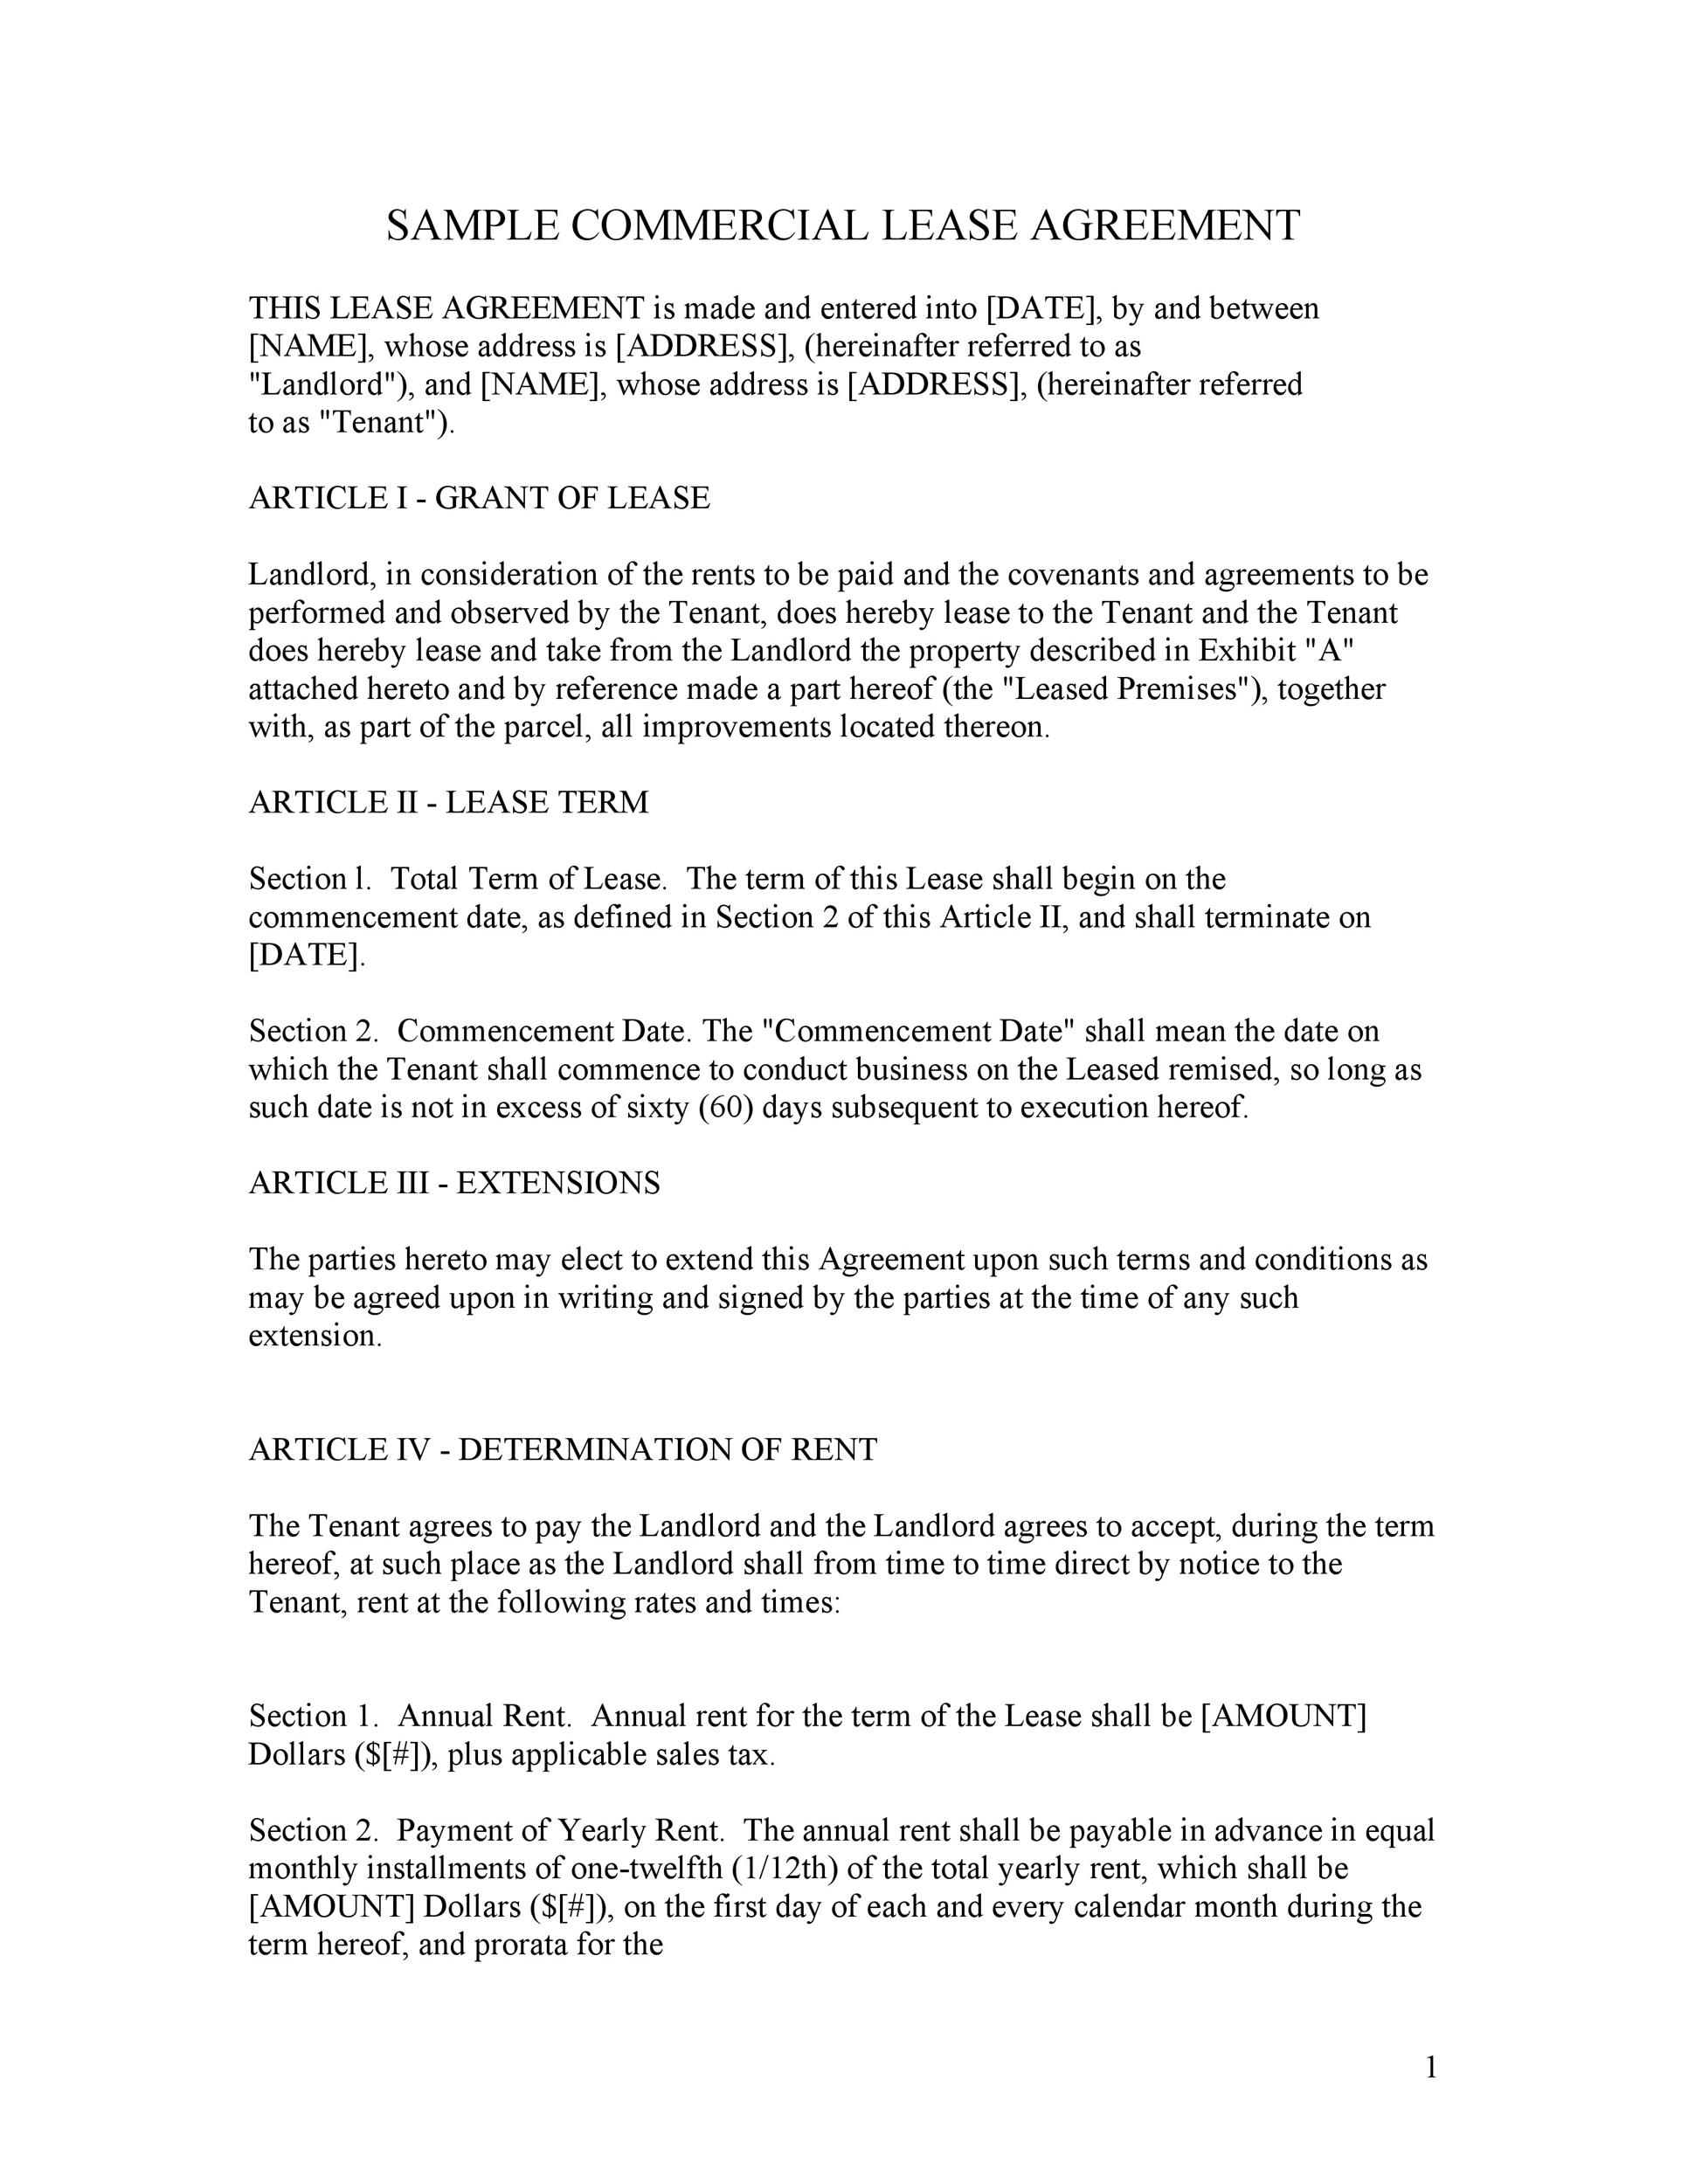 26 Free Commercial Lease Agreement Templates - Template Lab - sample office lease agreement